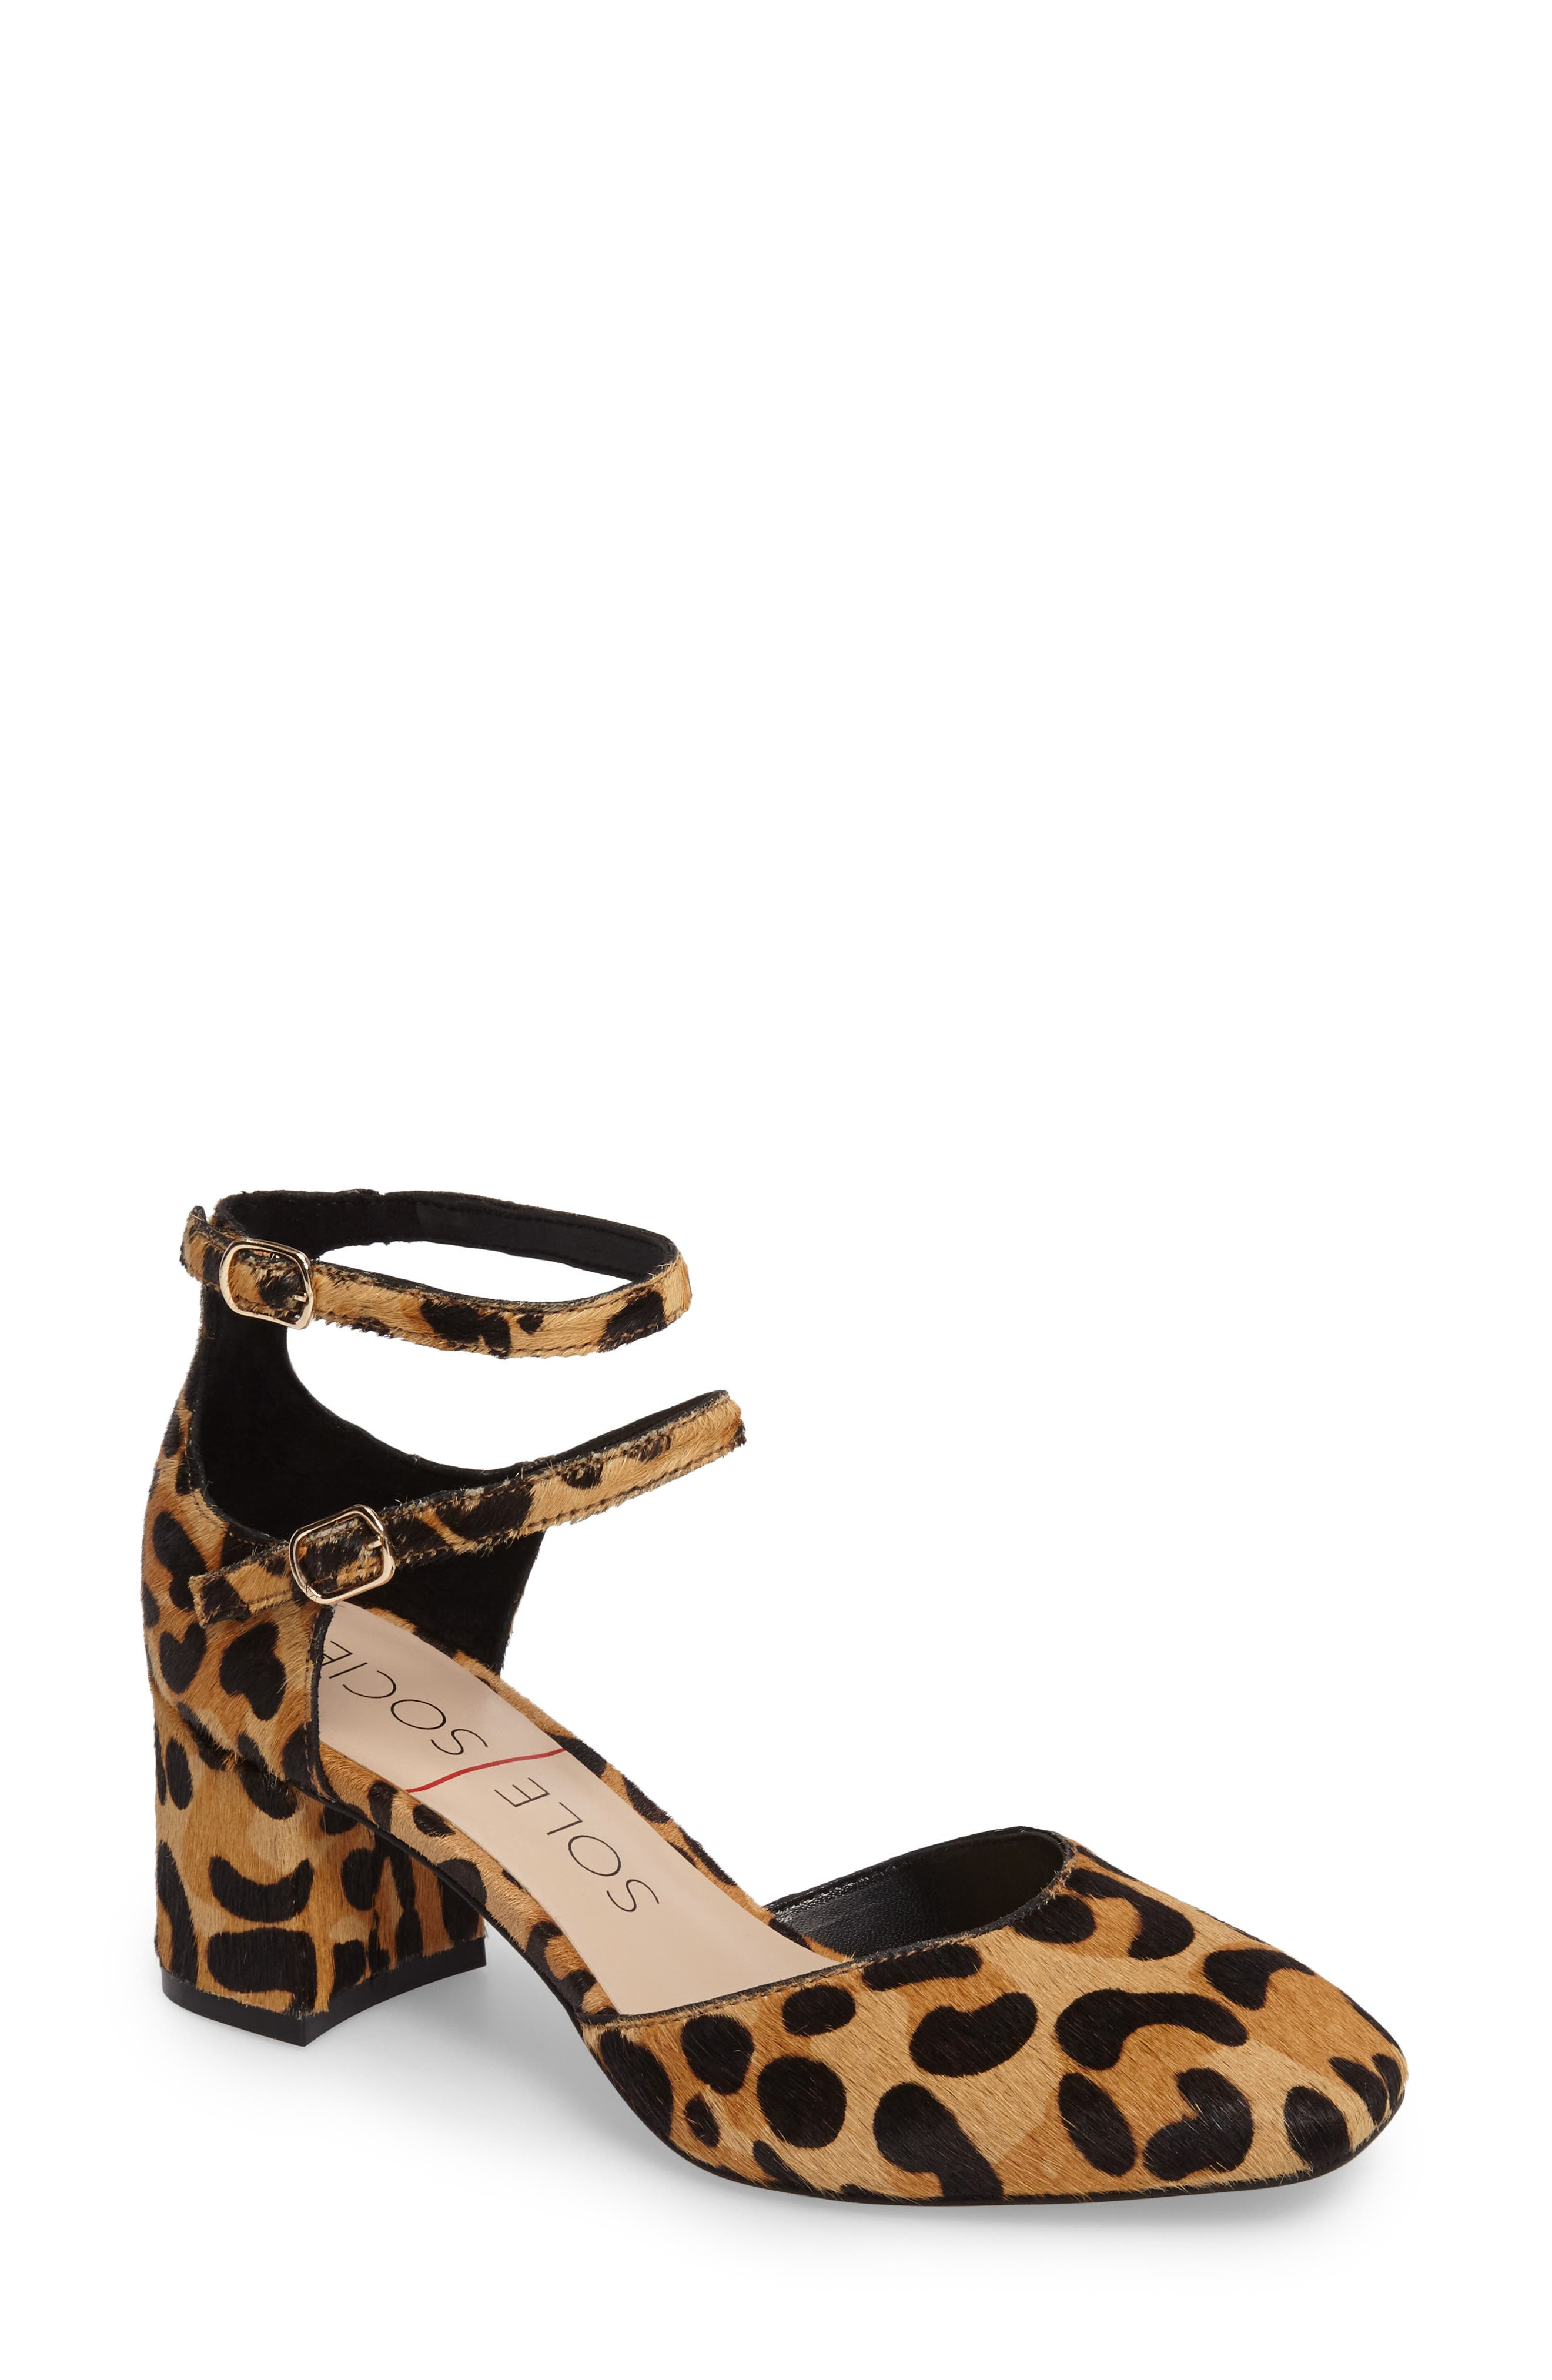 Main Image - Sole Society Selby Double Strap Pump (Women)